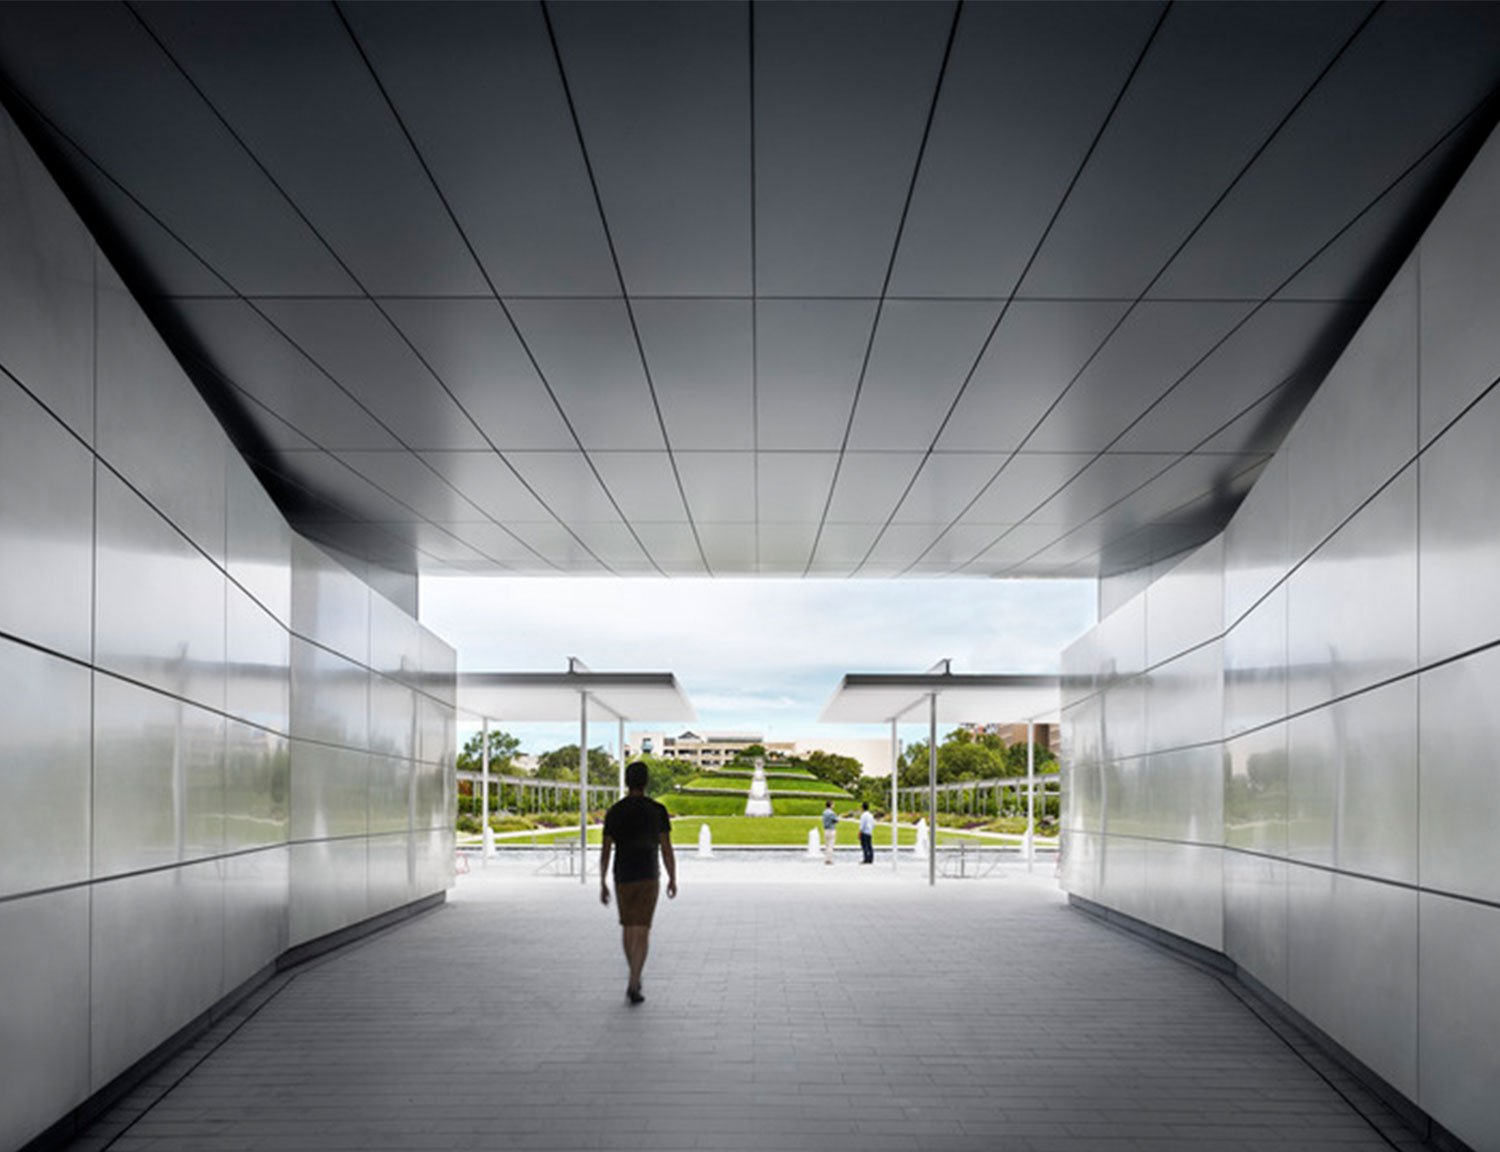 The Pavilion makes a threshold to the garden - a magic door you go through to enter another world. The entryway portal's angled stainless steel walls and aluminum ceiling reflect the colors of the sky, ear Casey Dunn